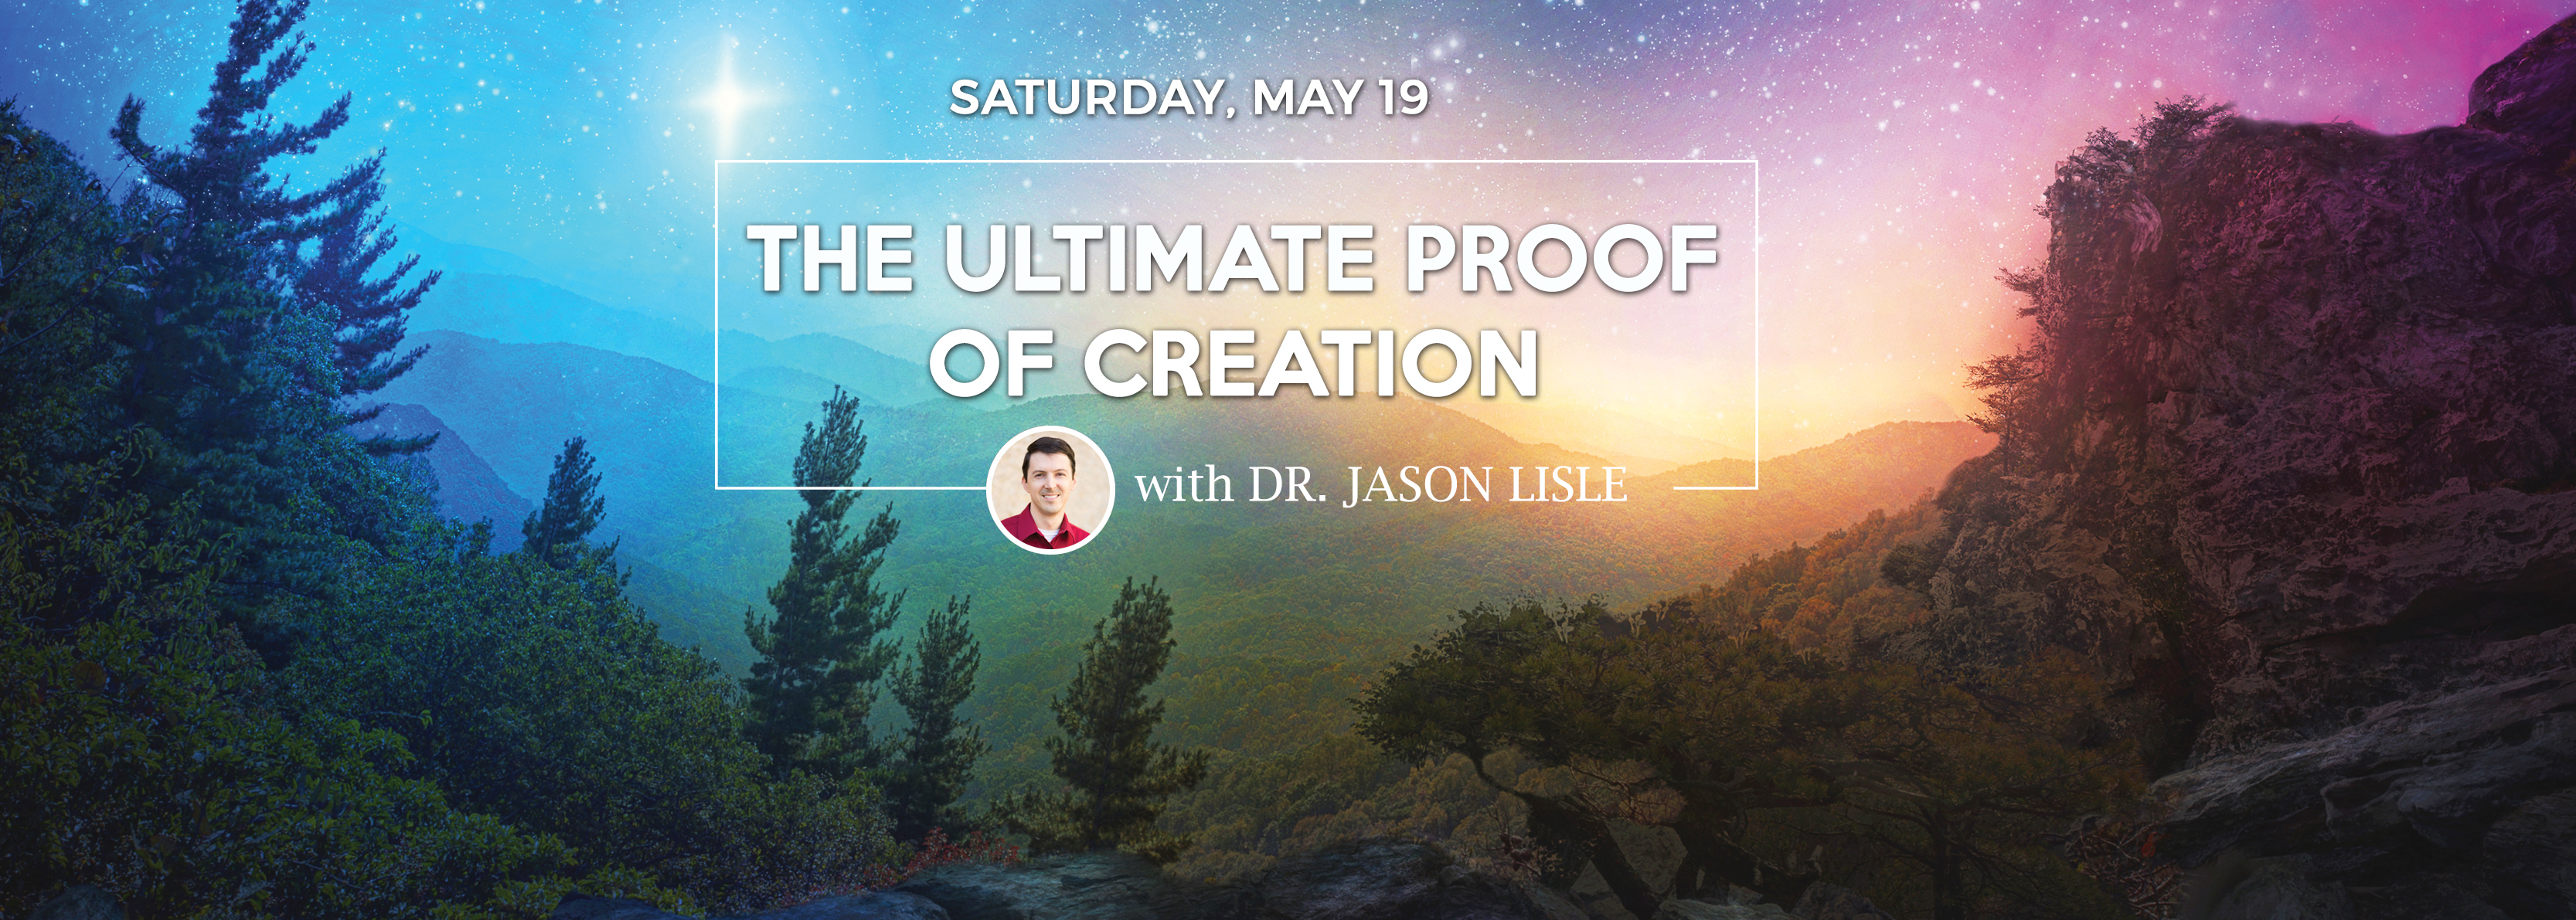 Ultimate Proof of Creation